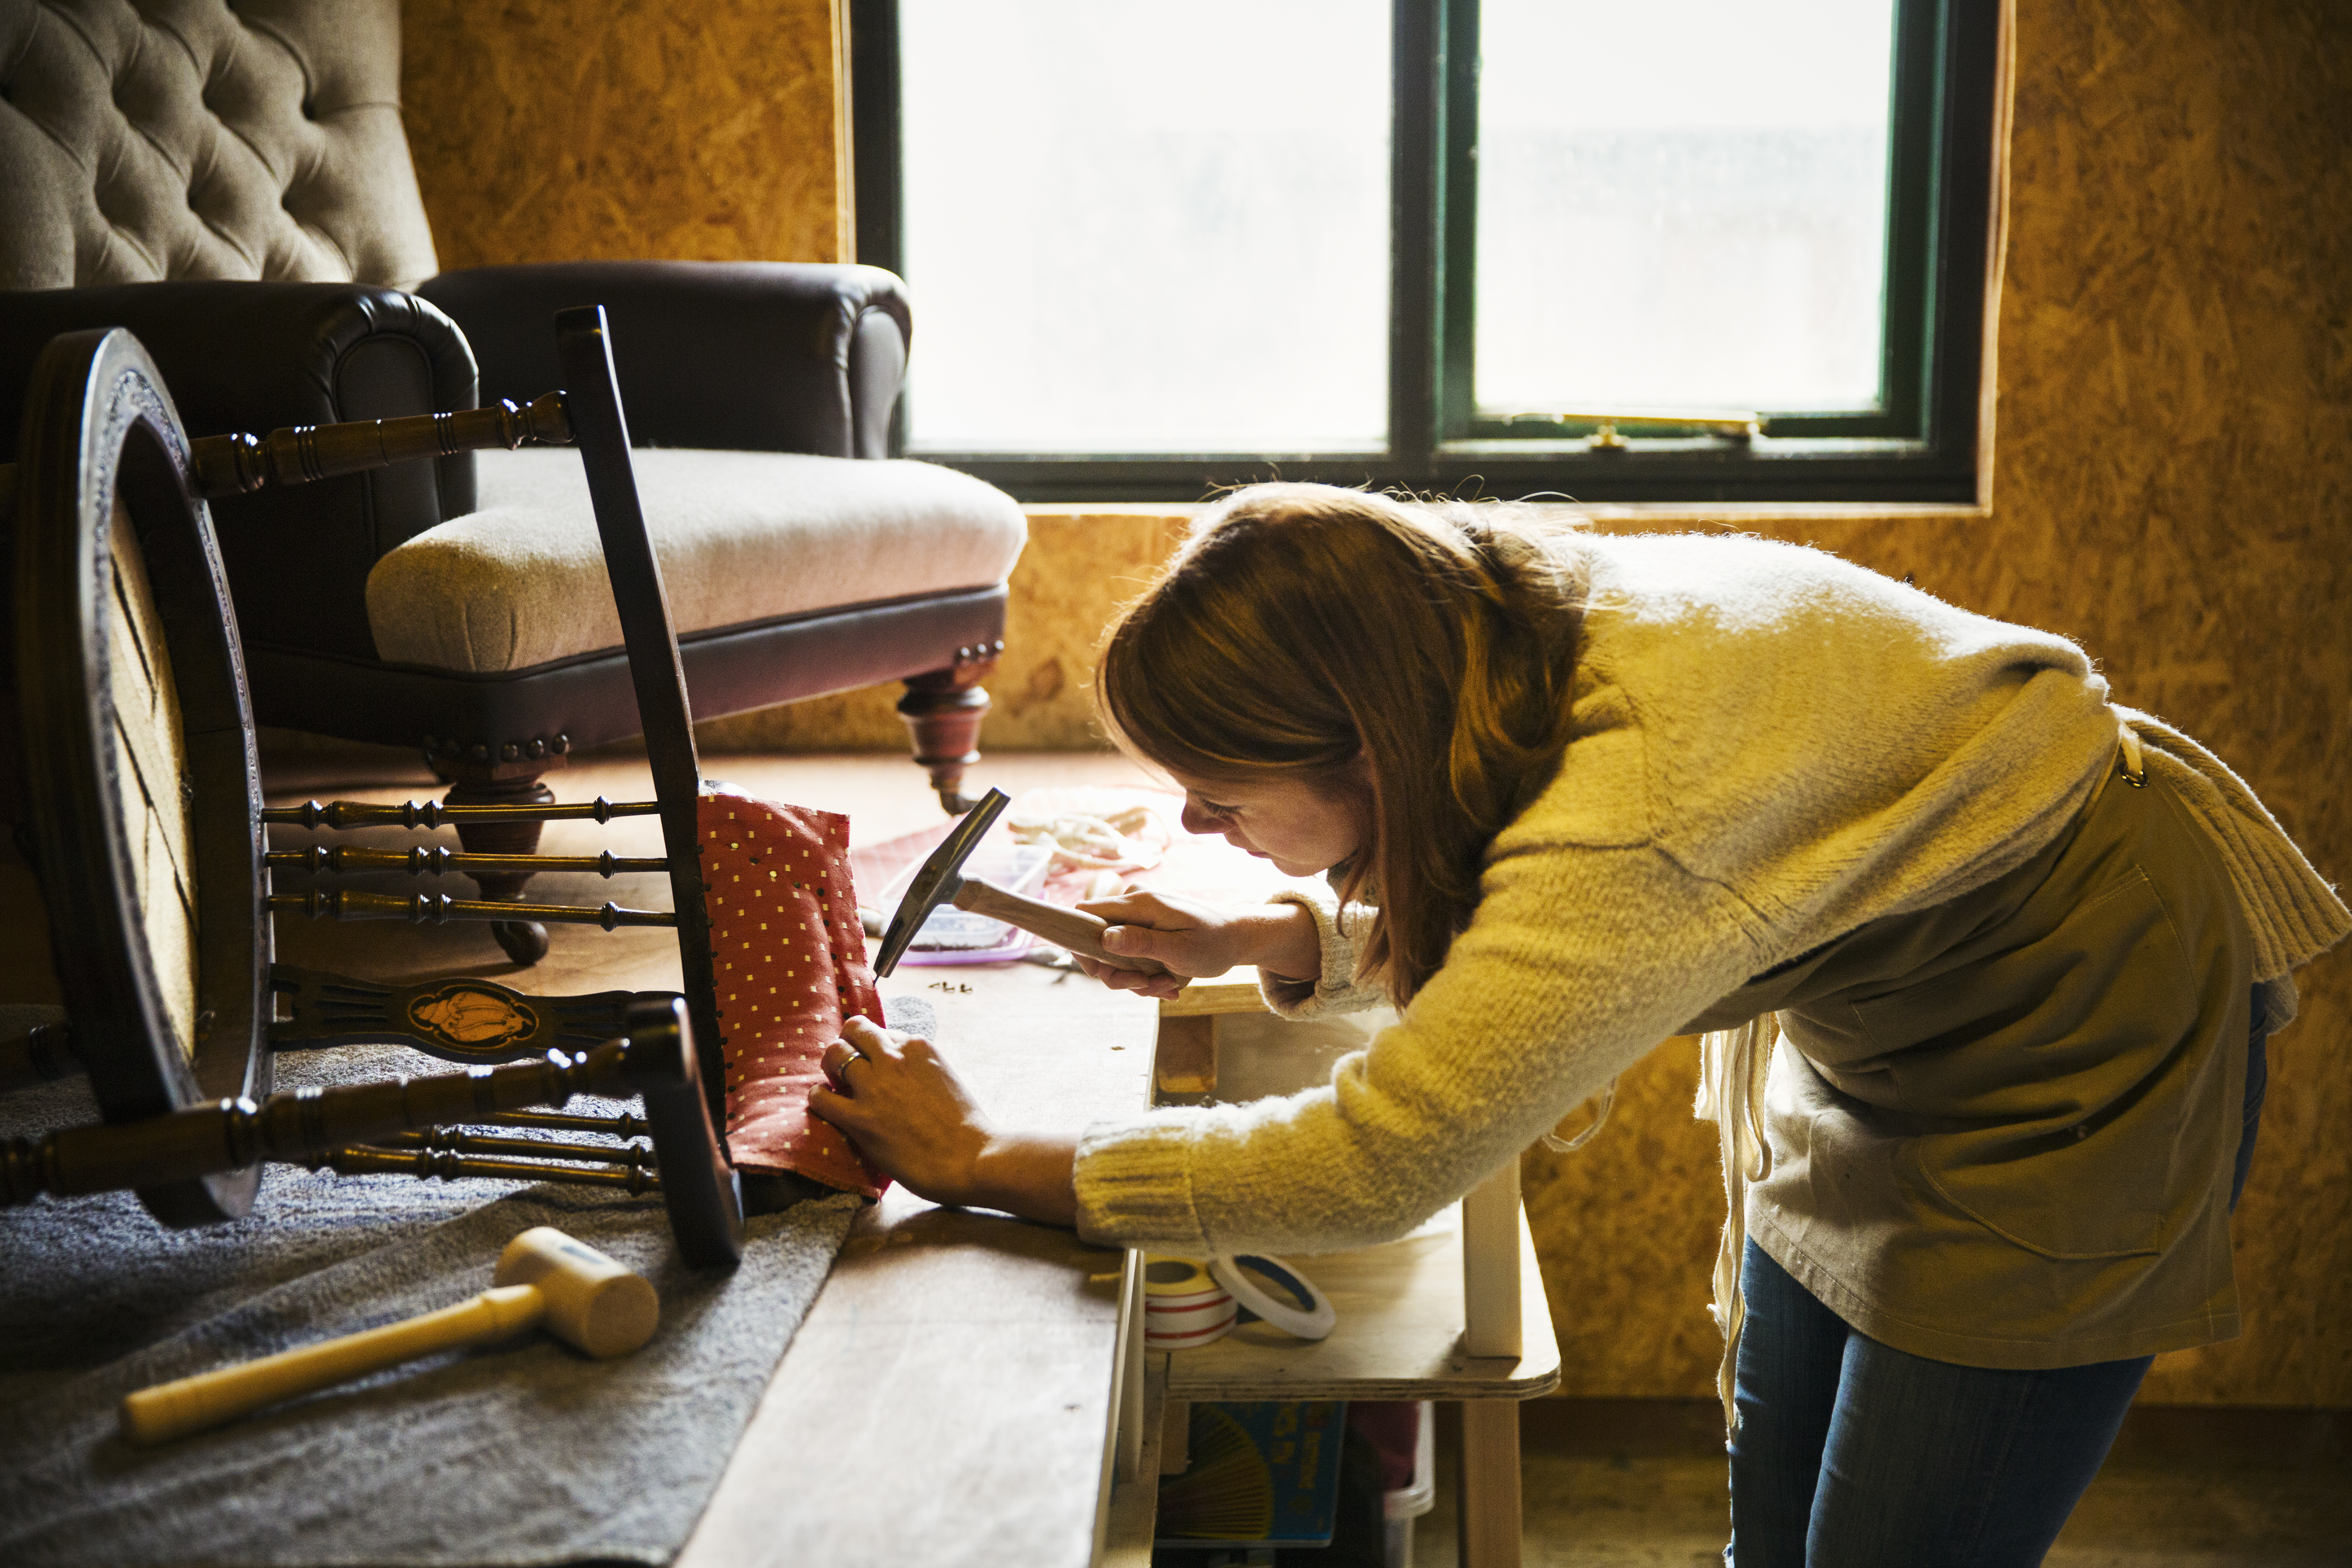 upholstery-workshop-a-woman-hammering-fa